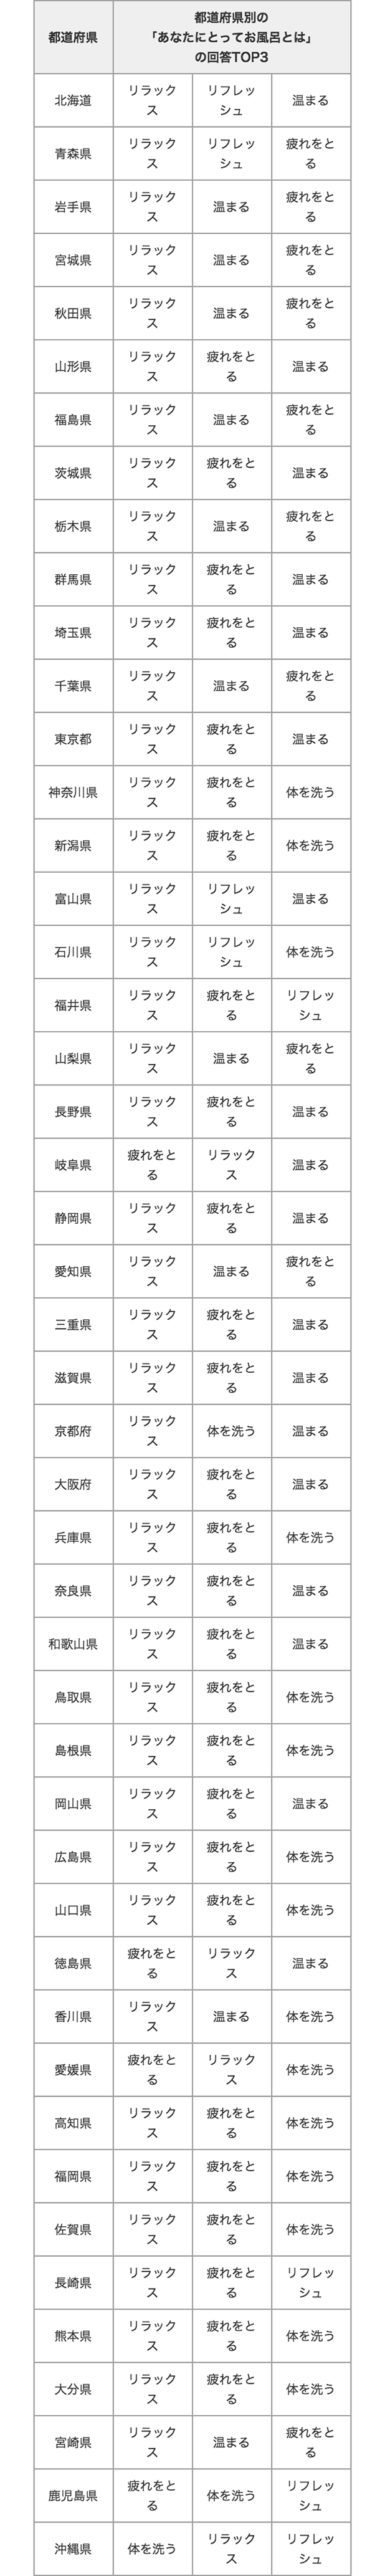 20120124_table3_2